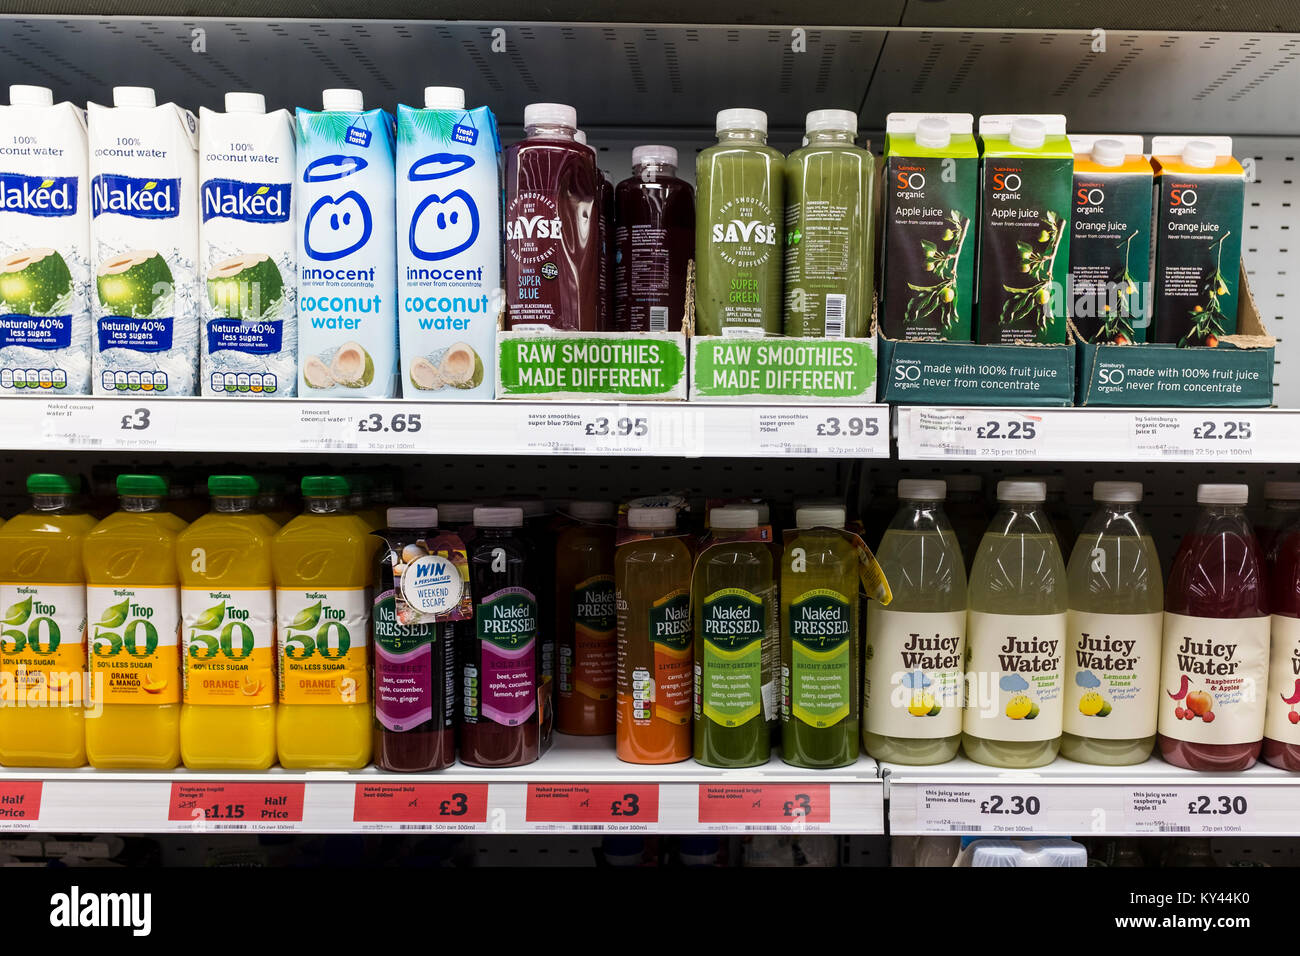 Smoothie and other type of fruit juices bottles on display on supermarket shelves, UK - Stock Image